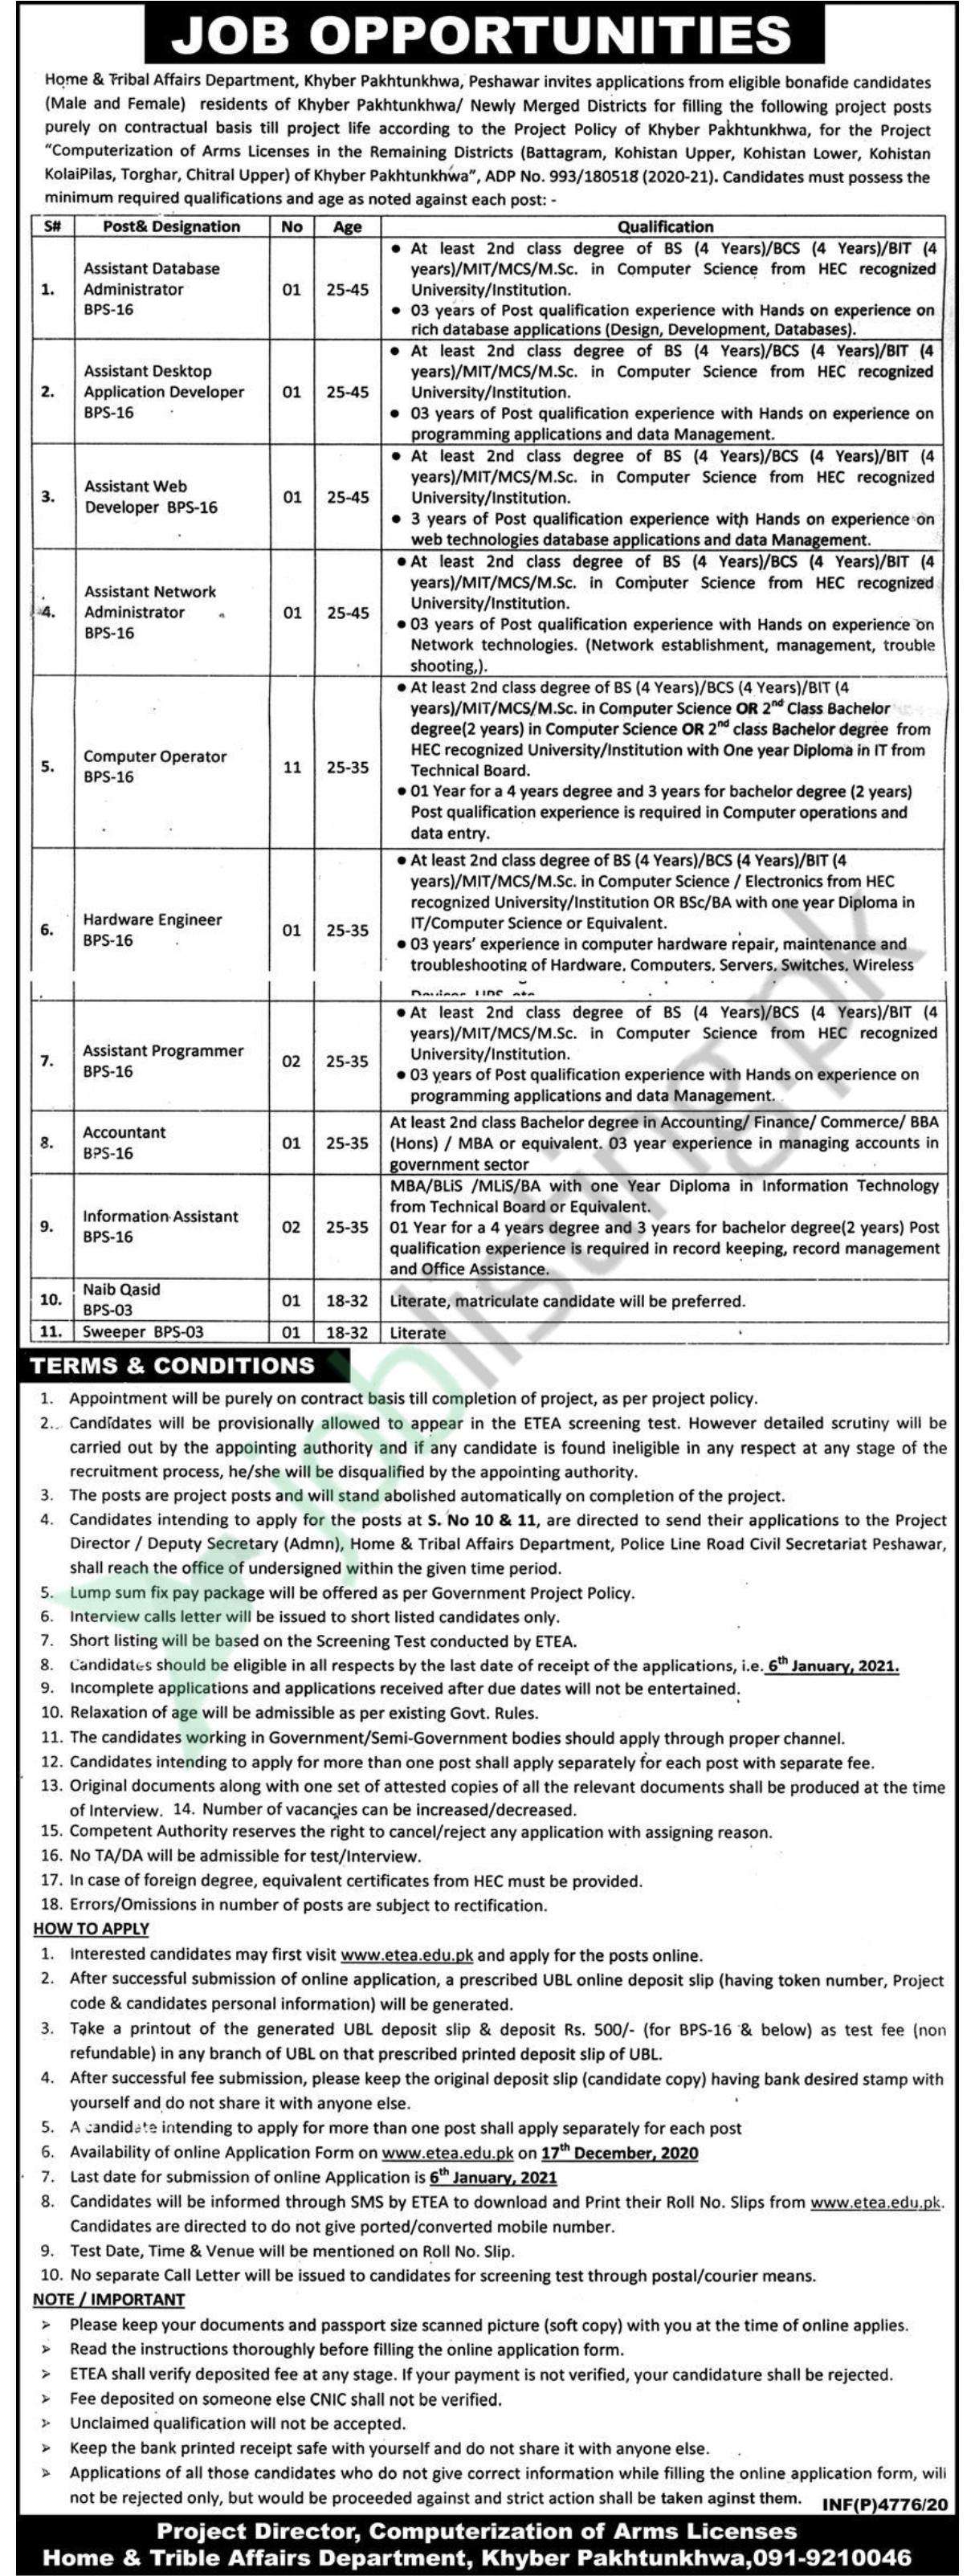 Home & Tribal Affairs Department KPK 2021 for BS-16 to BS-03